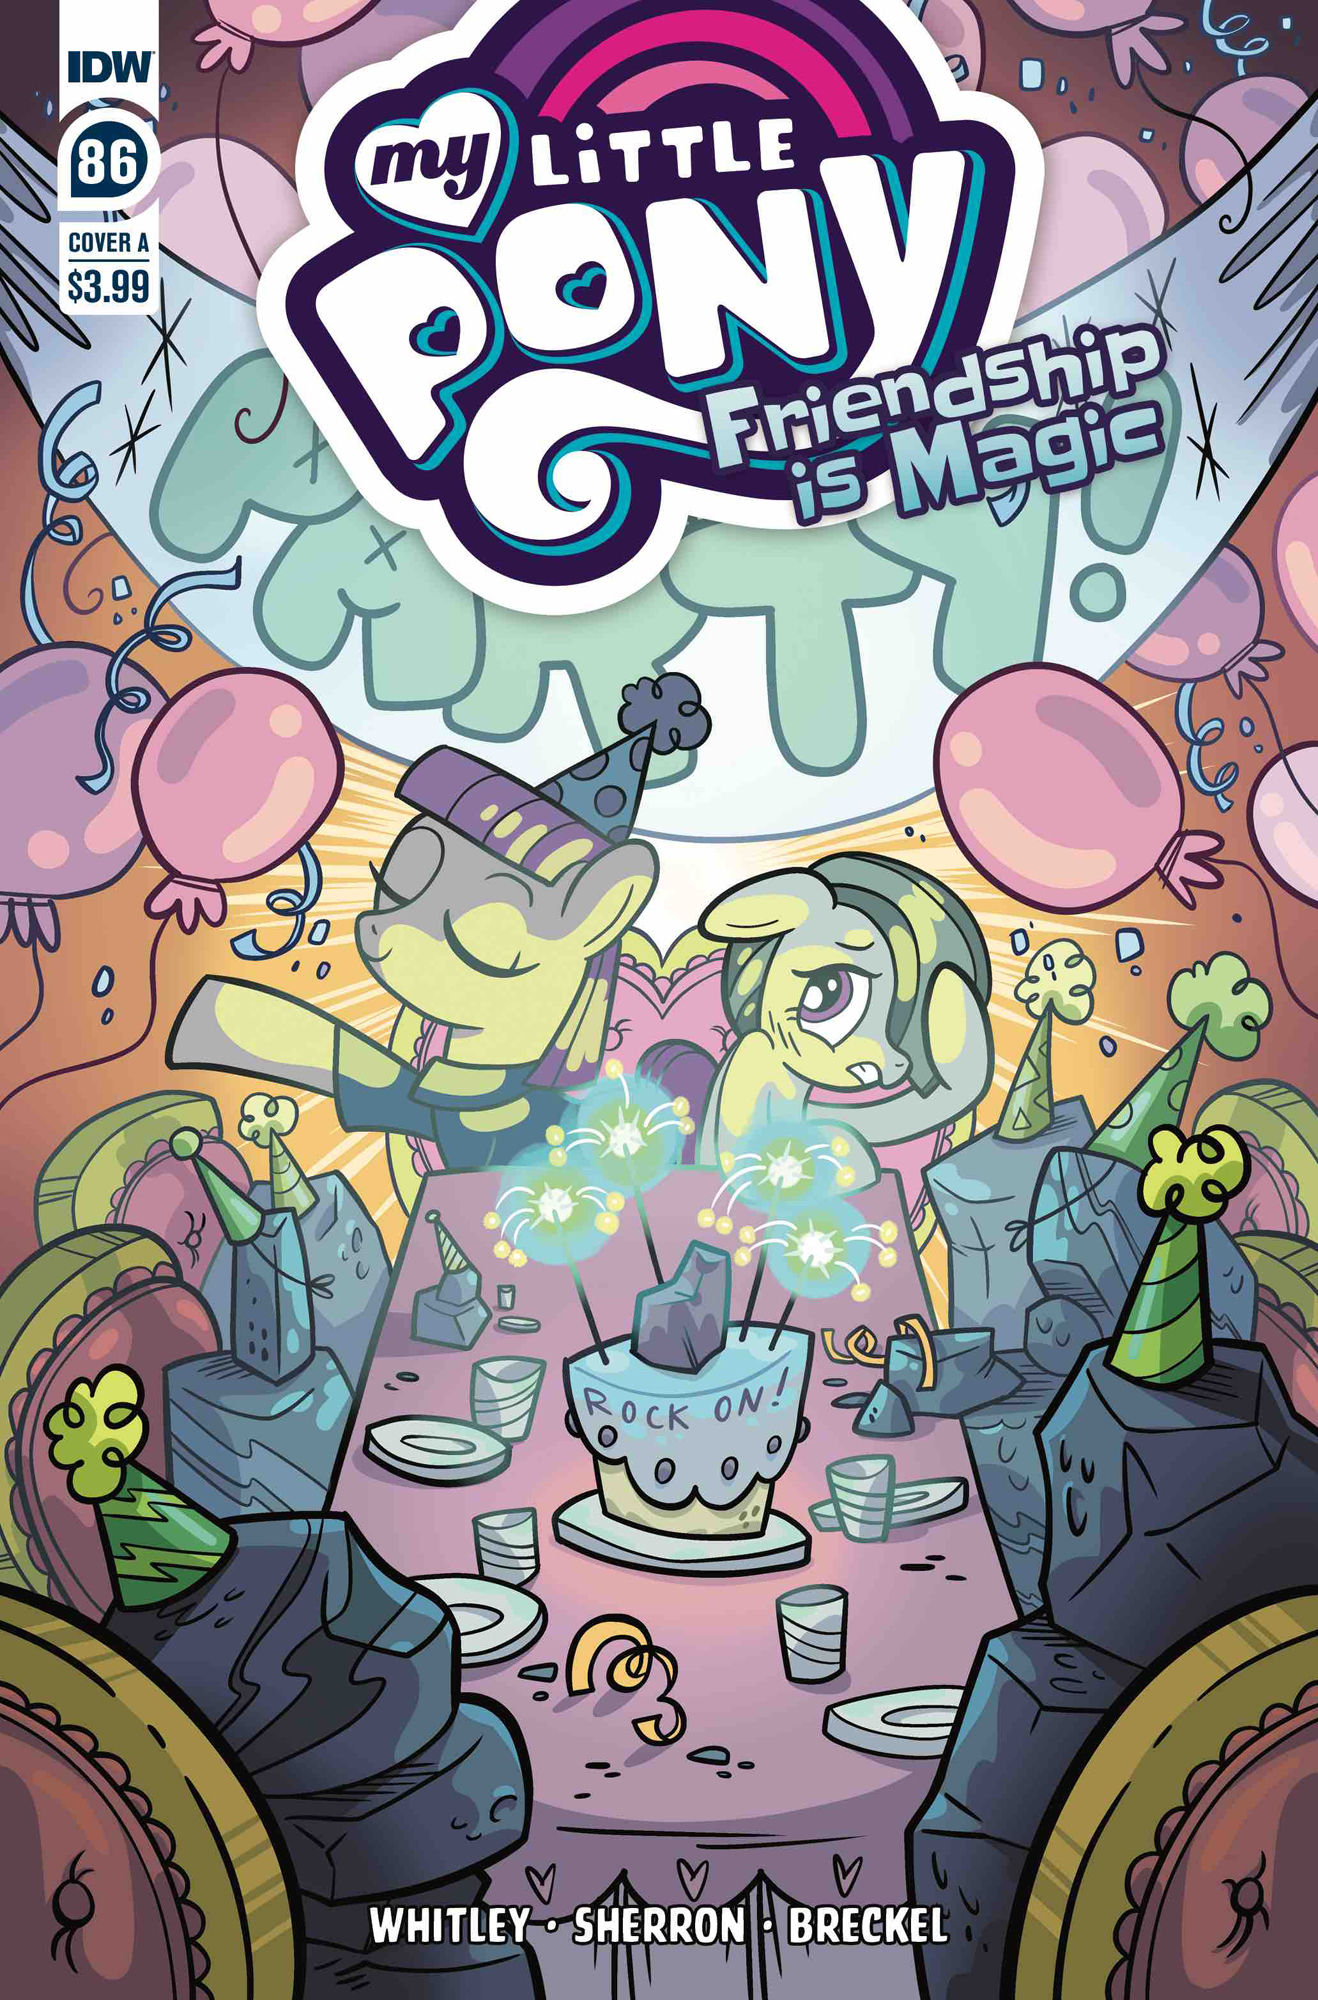 Friendship is Magic Issue 86